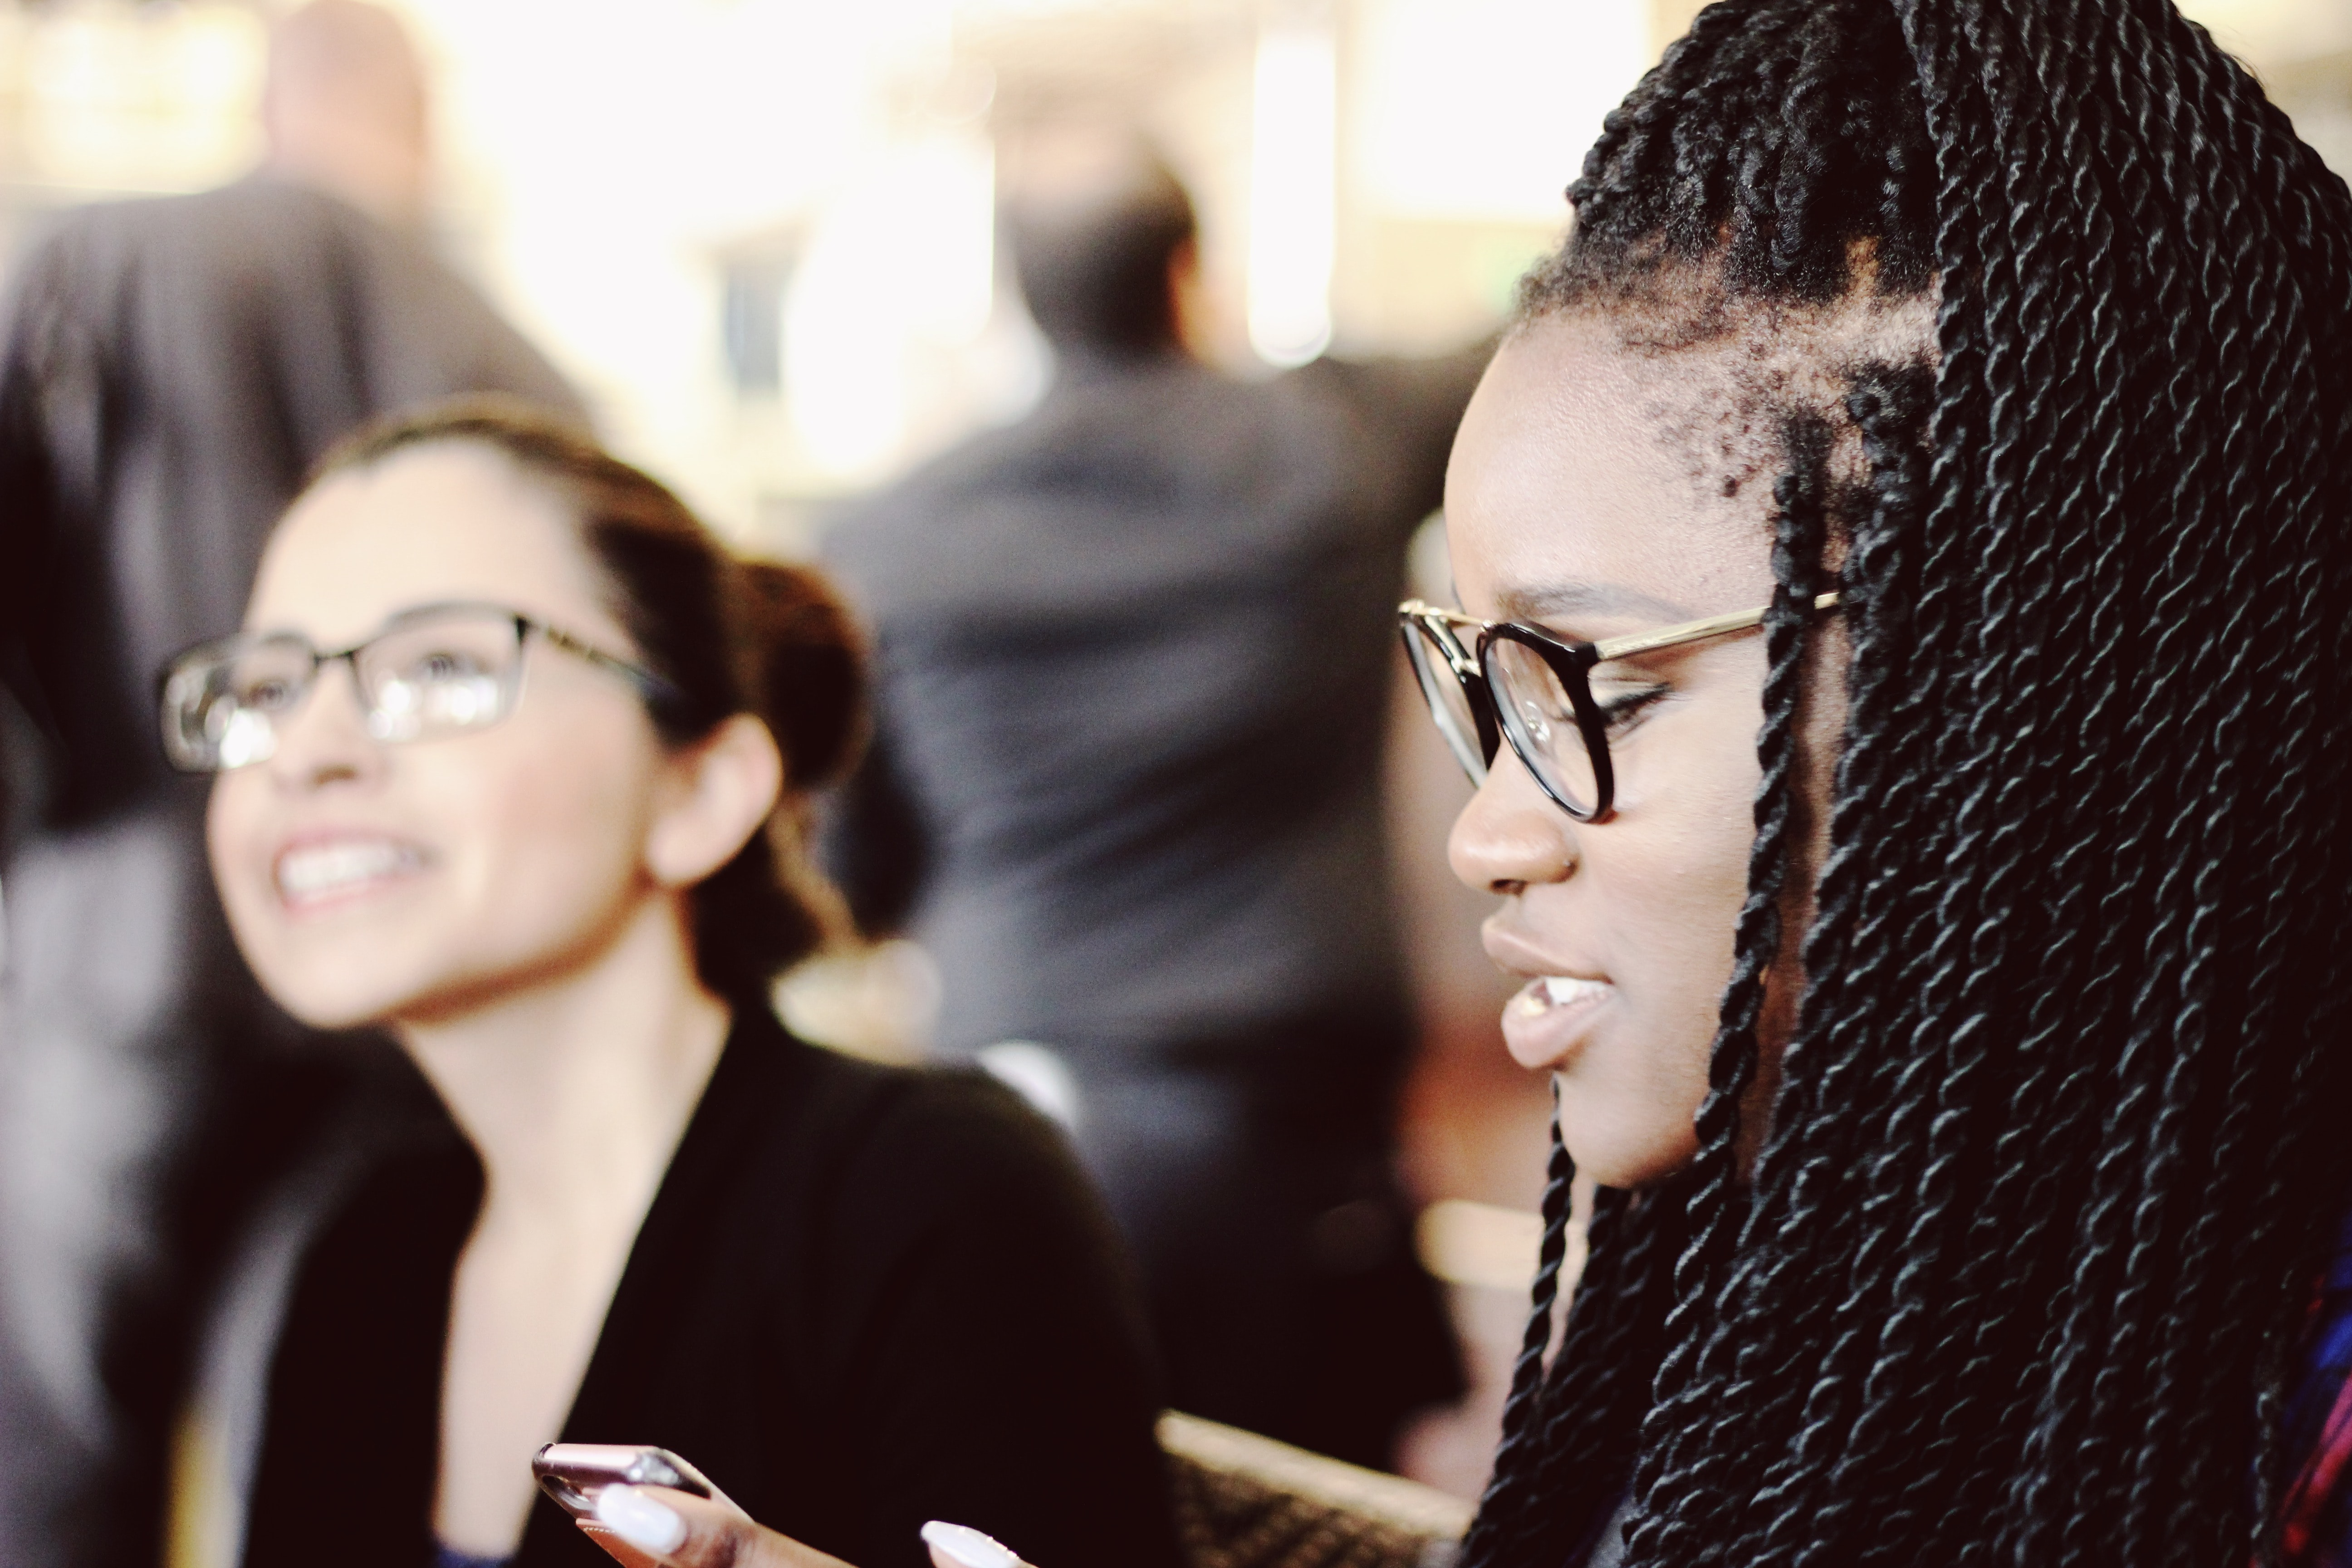 An African American girl with braids and glasses next to an Asian girl with braids.